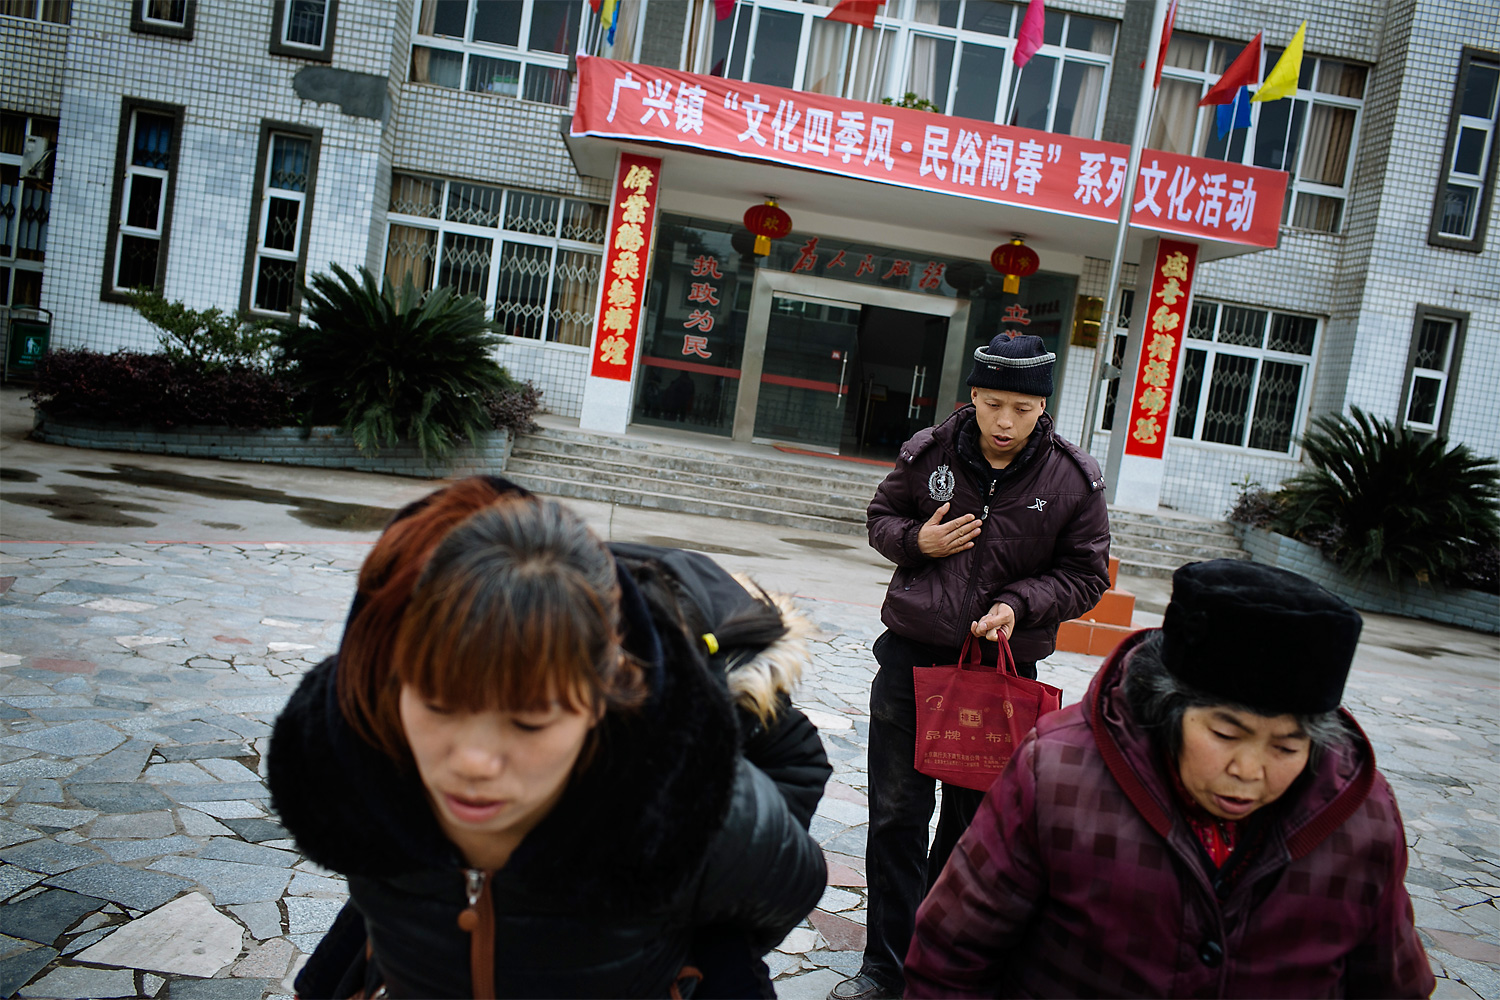 Li Mingjin and his family leave the local government offices, after a meeting to ask for financial help. The local government officials didn't give a clear answer, saying instead that there are many cases like Li's in the town.